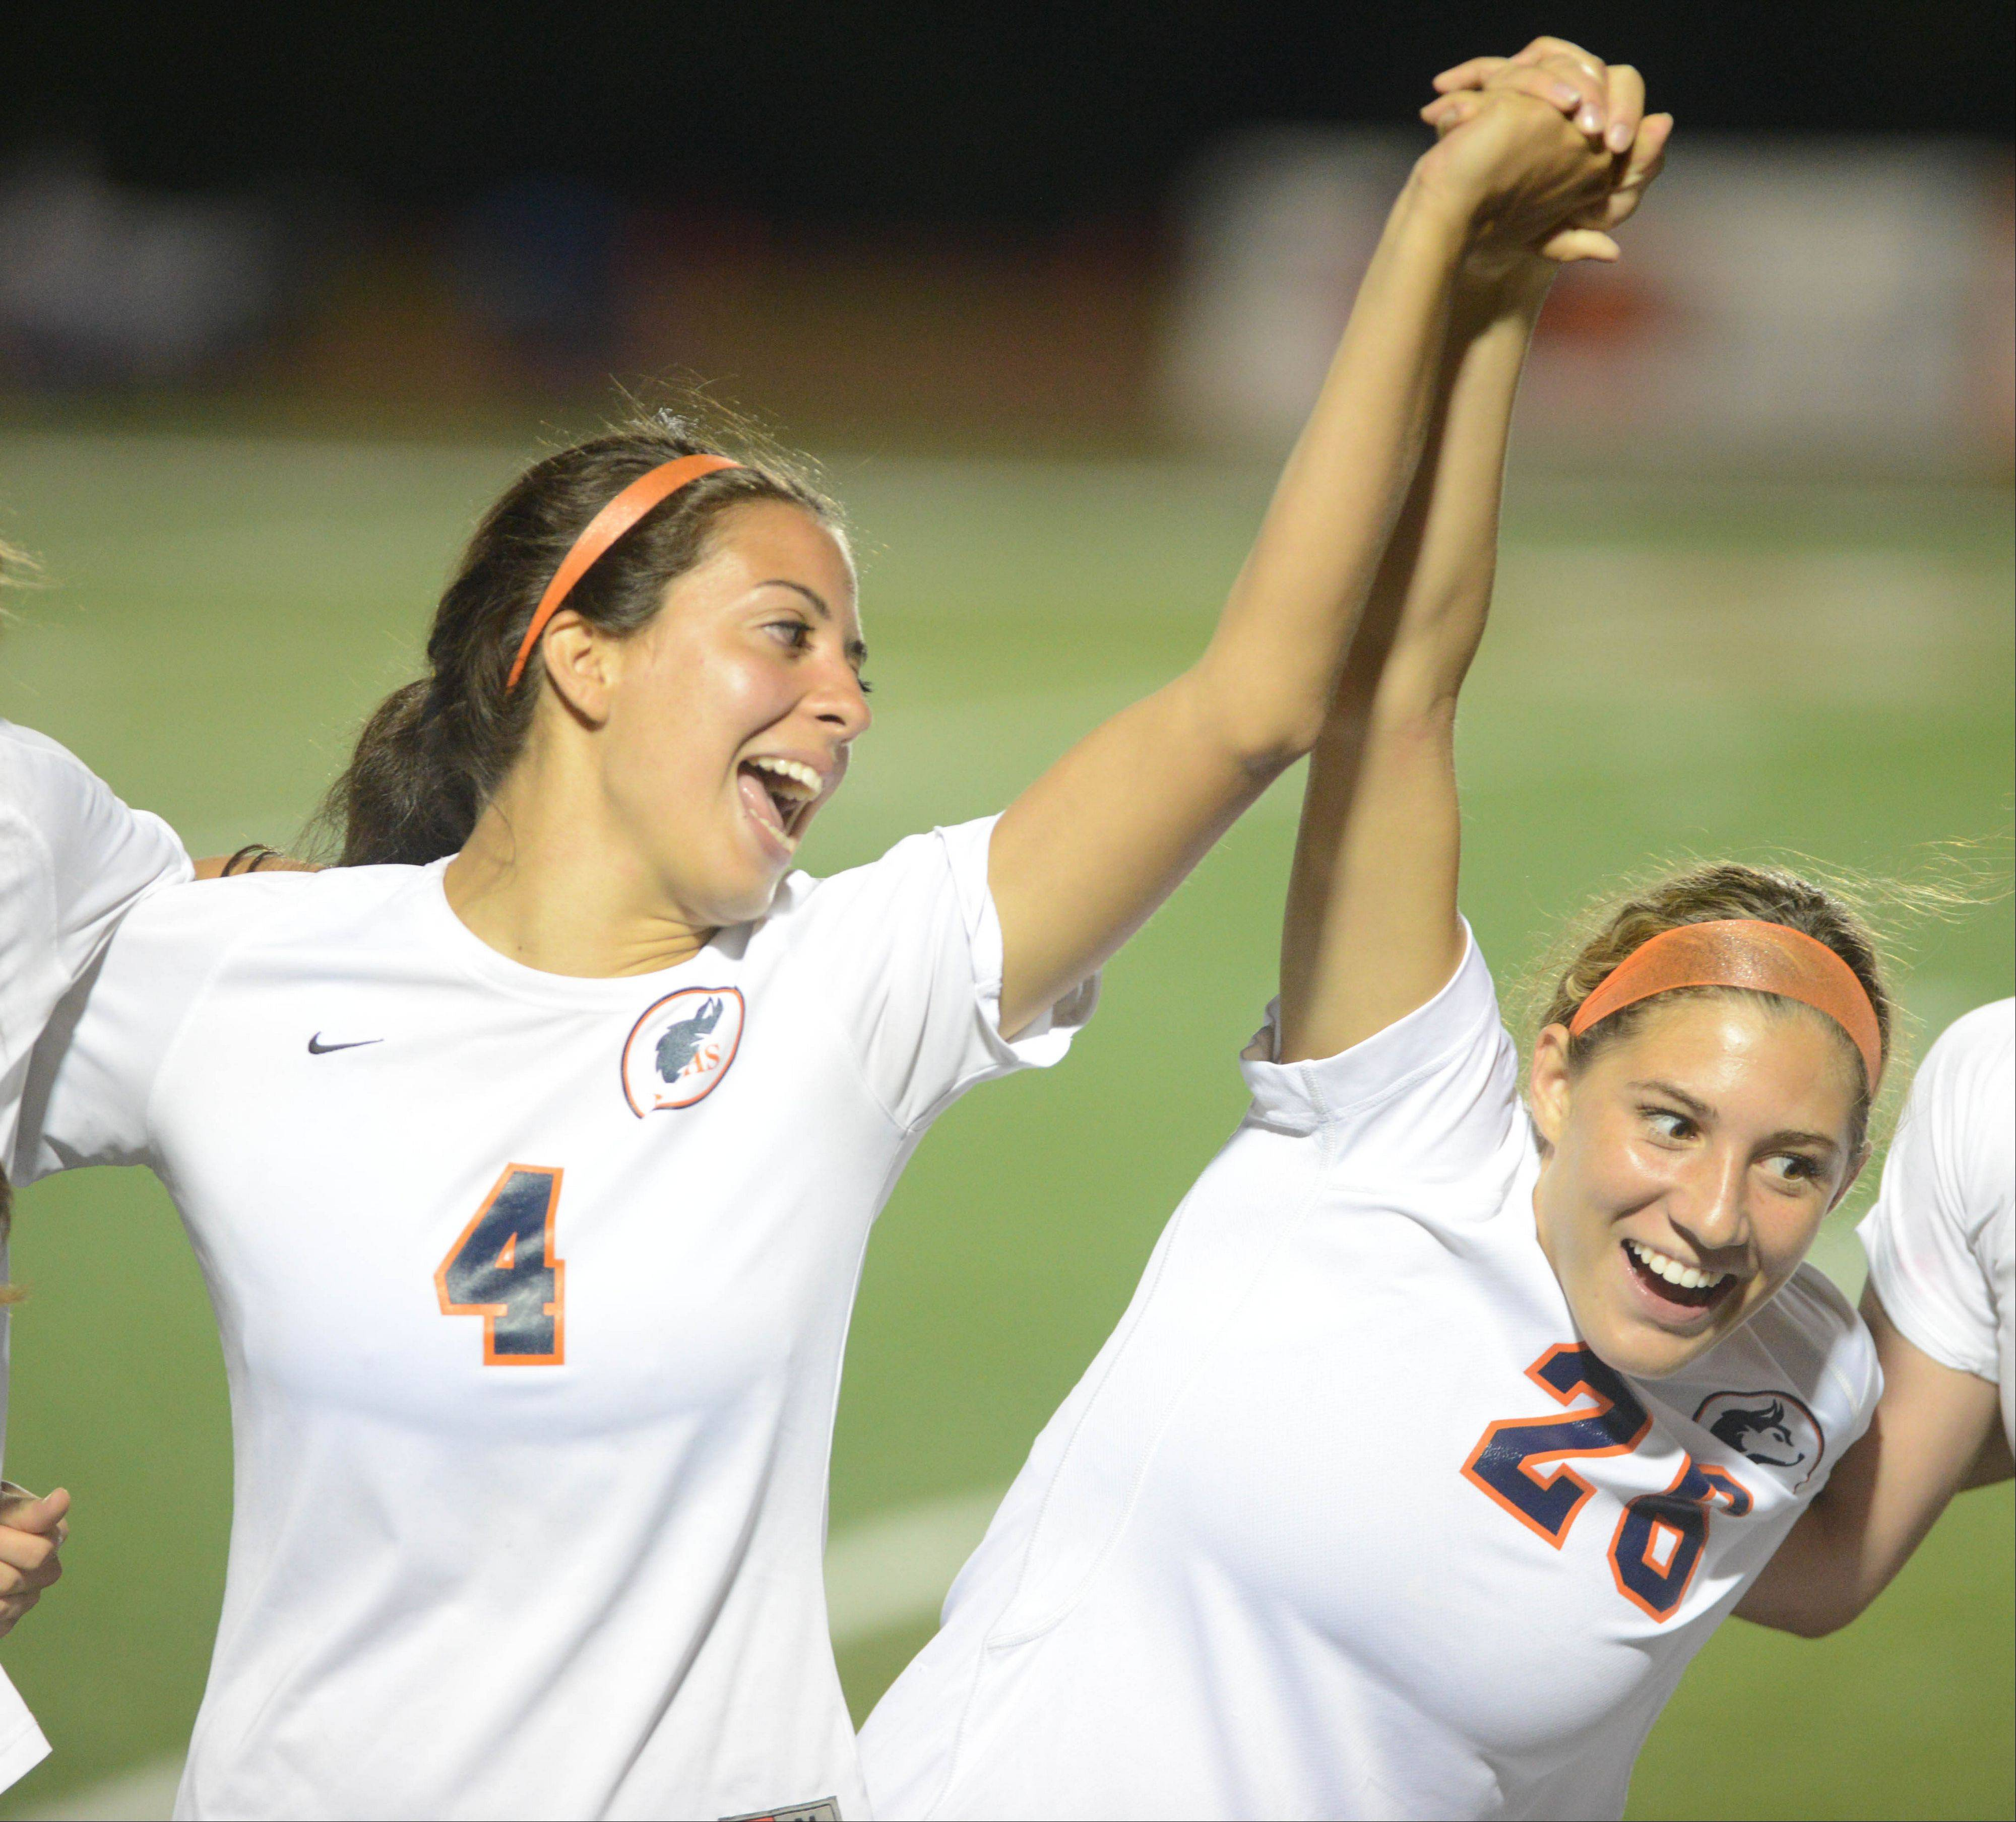 Naperville North's Caroline Rico, left, and Caroline Casas celebrate their win at the Class 3A girls soccer championship in Naperville Saturday.